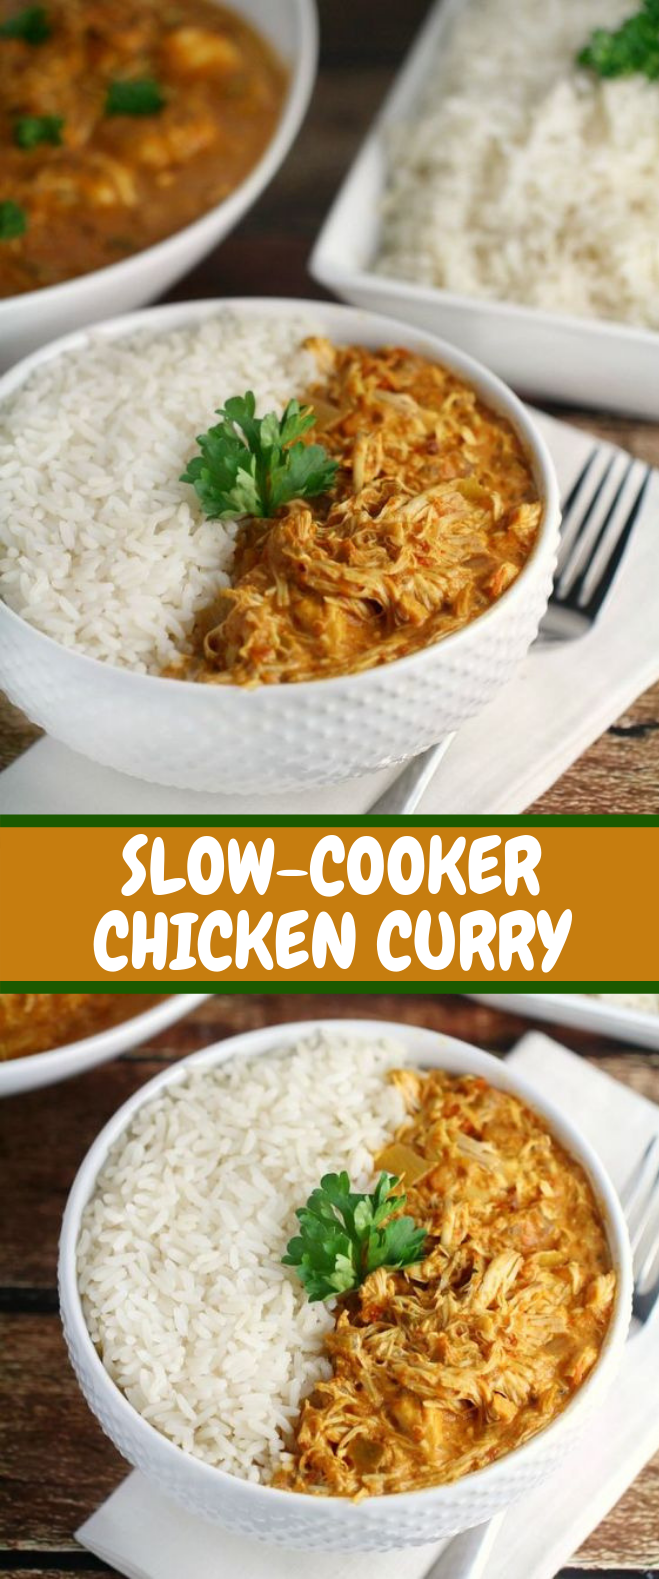 SLOW-COOKER CHICKEN CURRY #Dinner #FamilyDinner